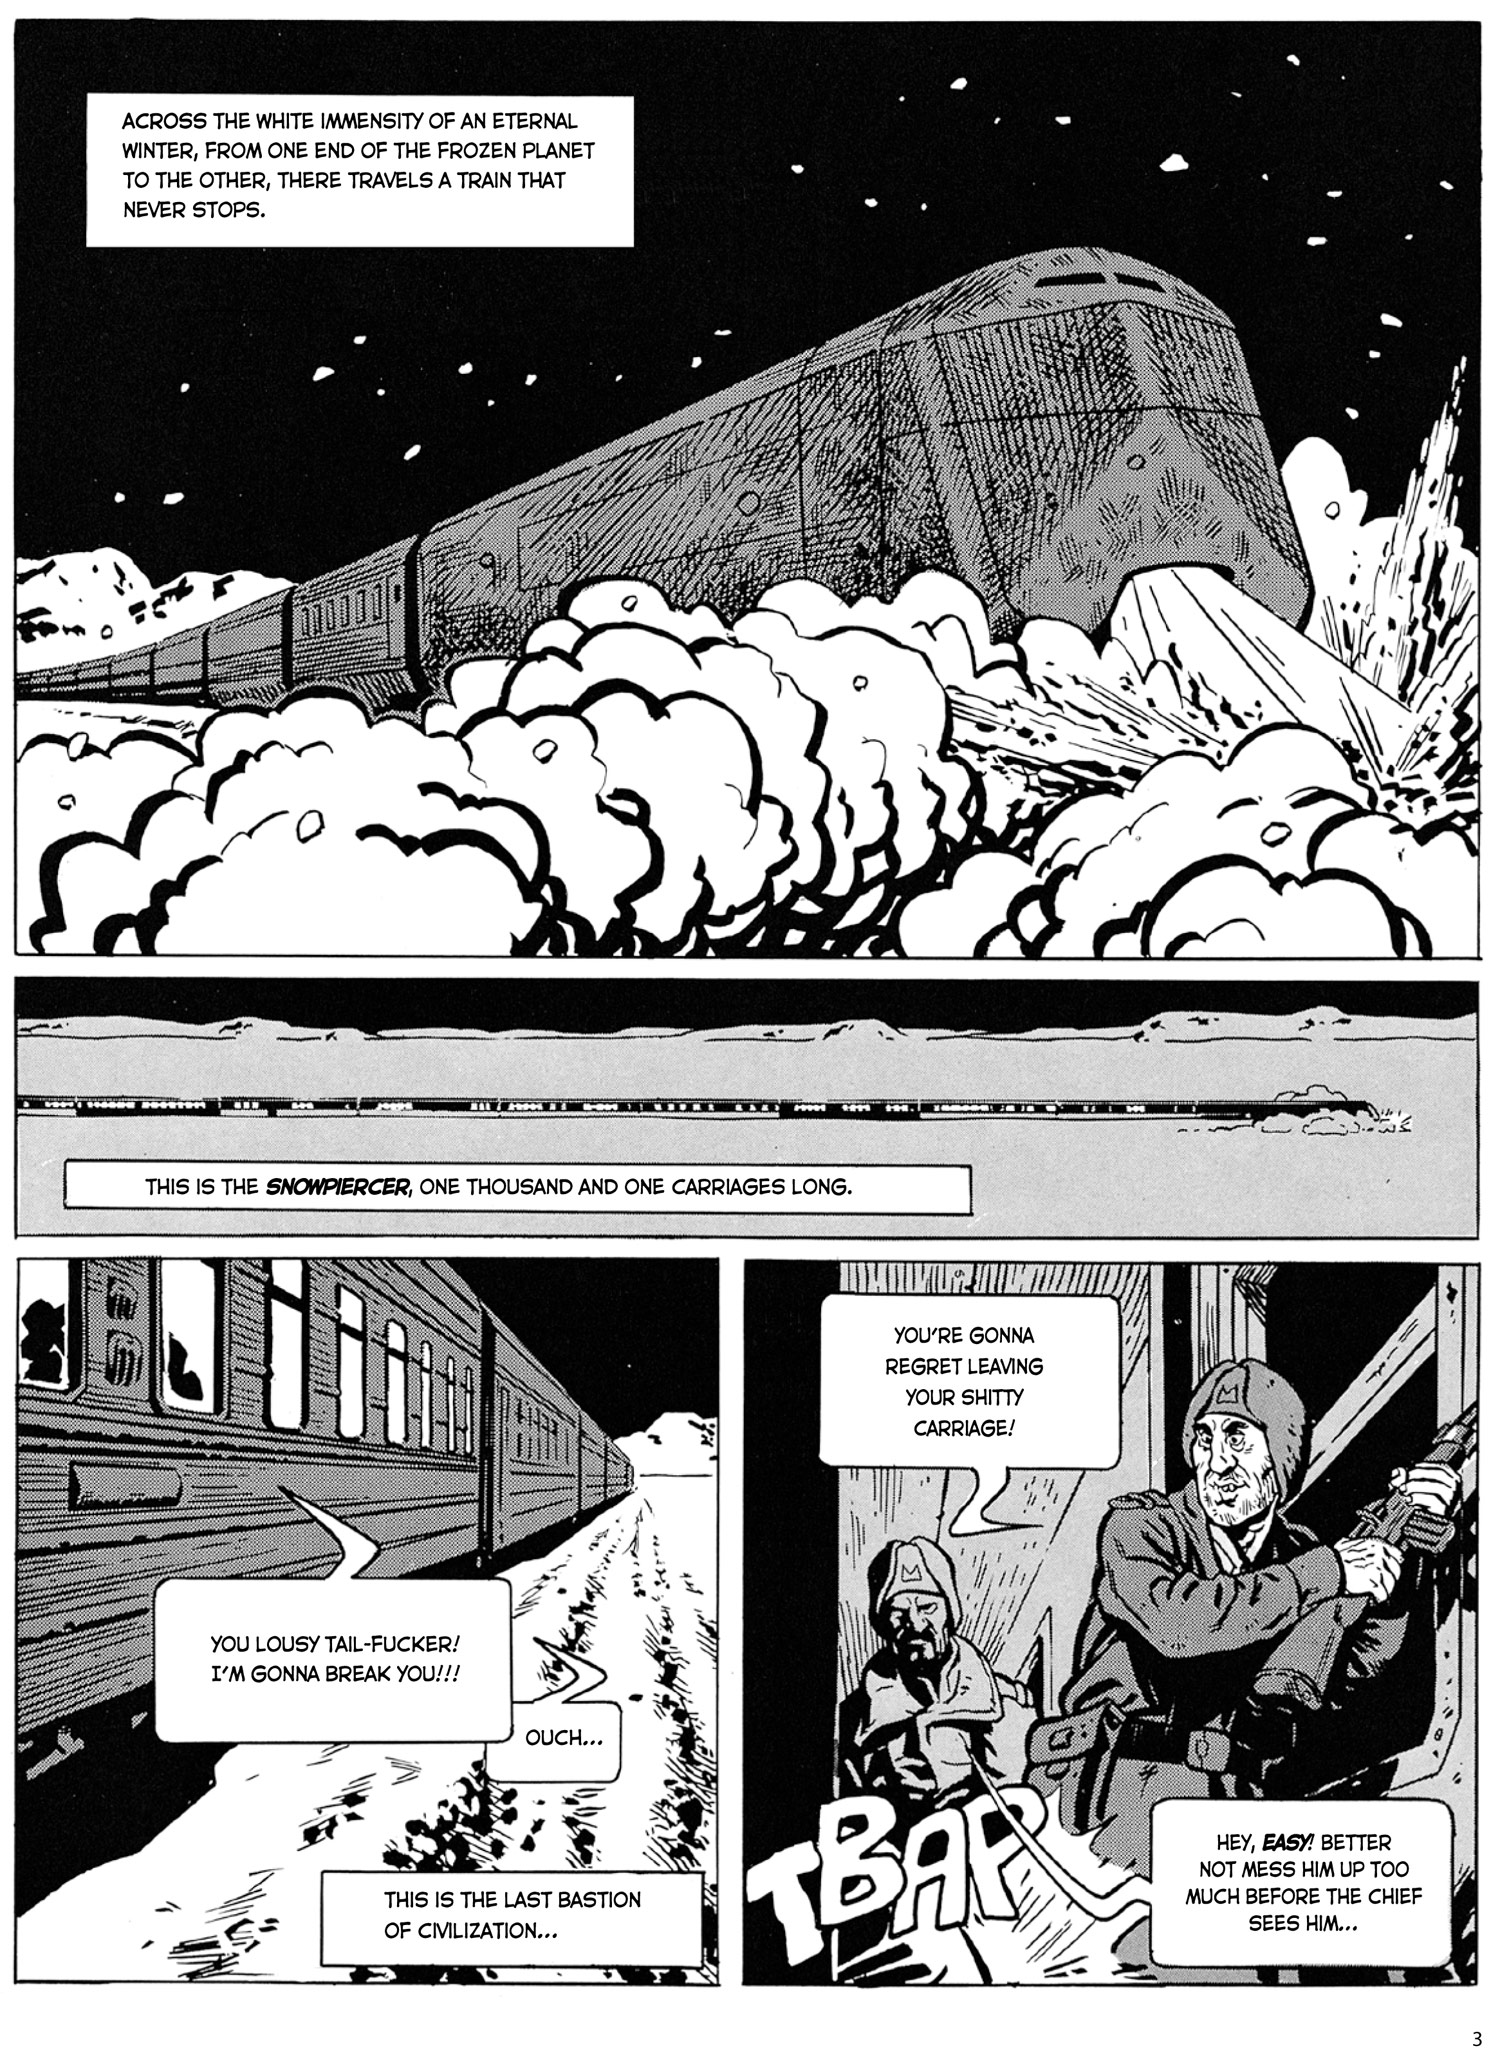 Snowpiercer Vol.1 interior page 1 (uncensored)